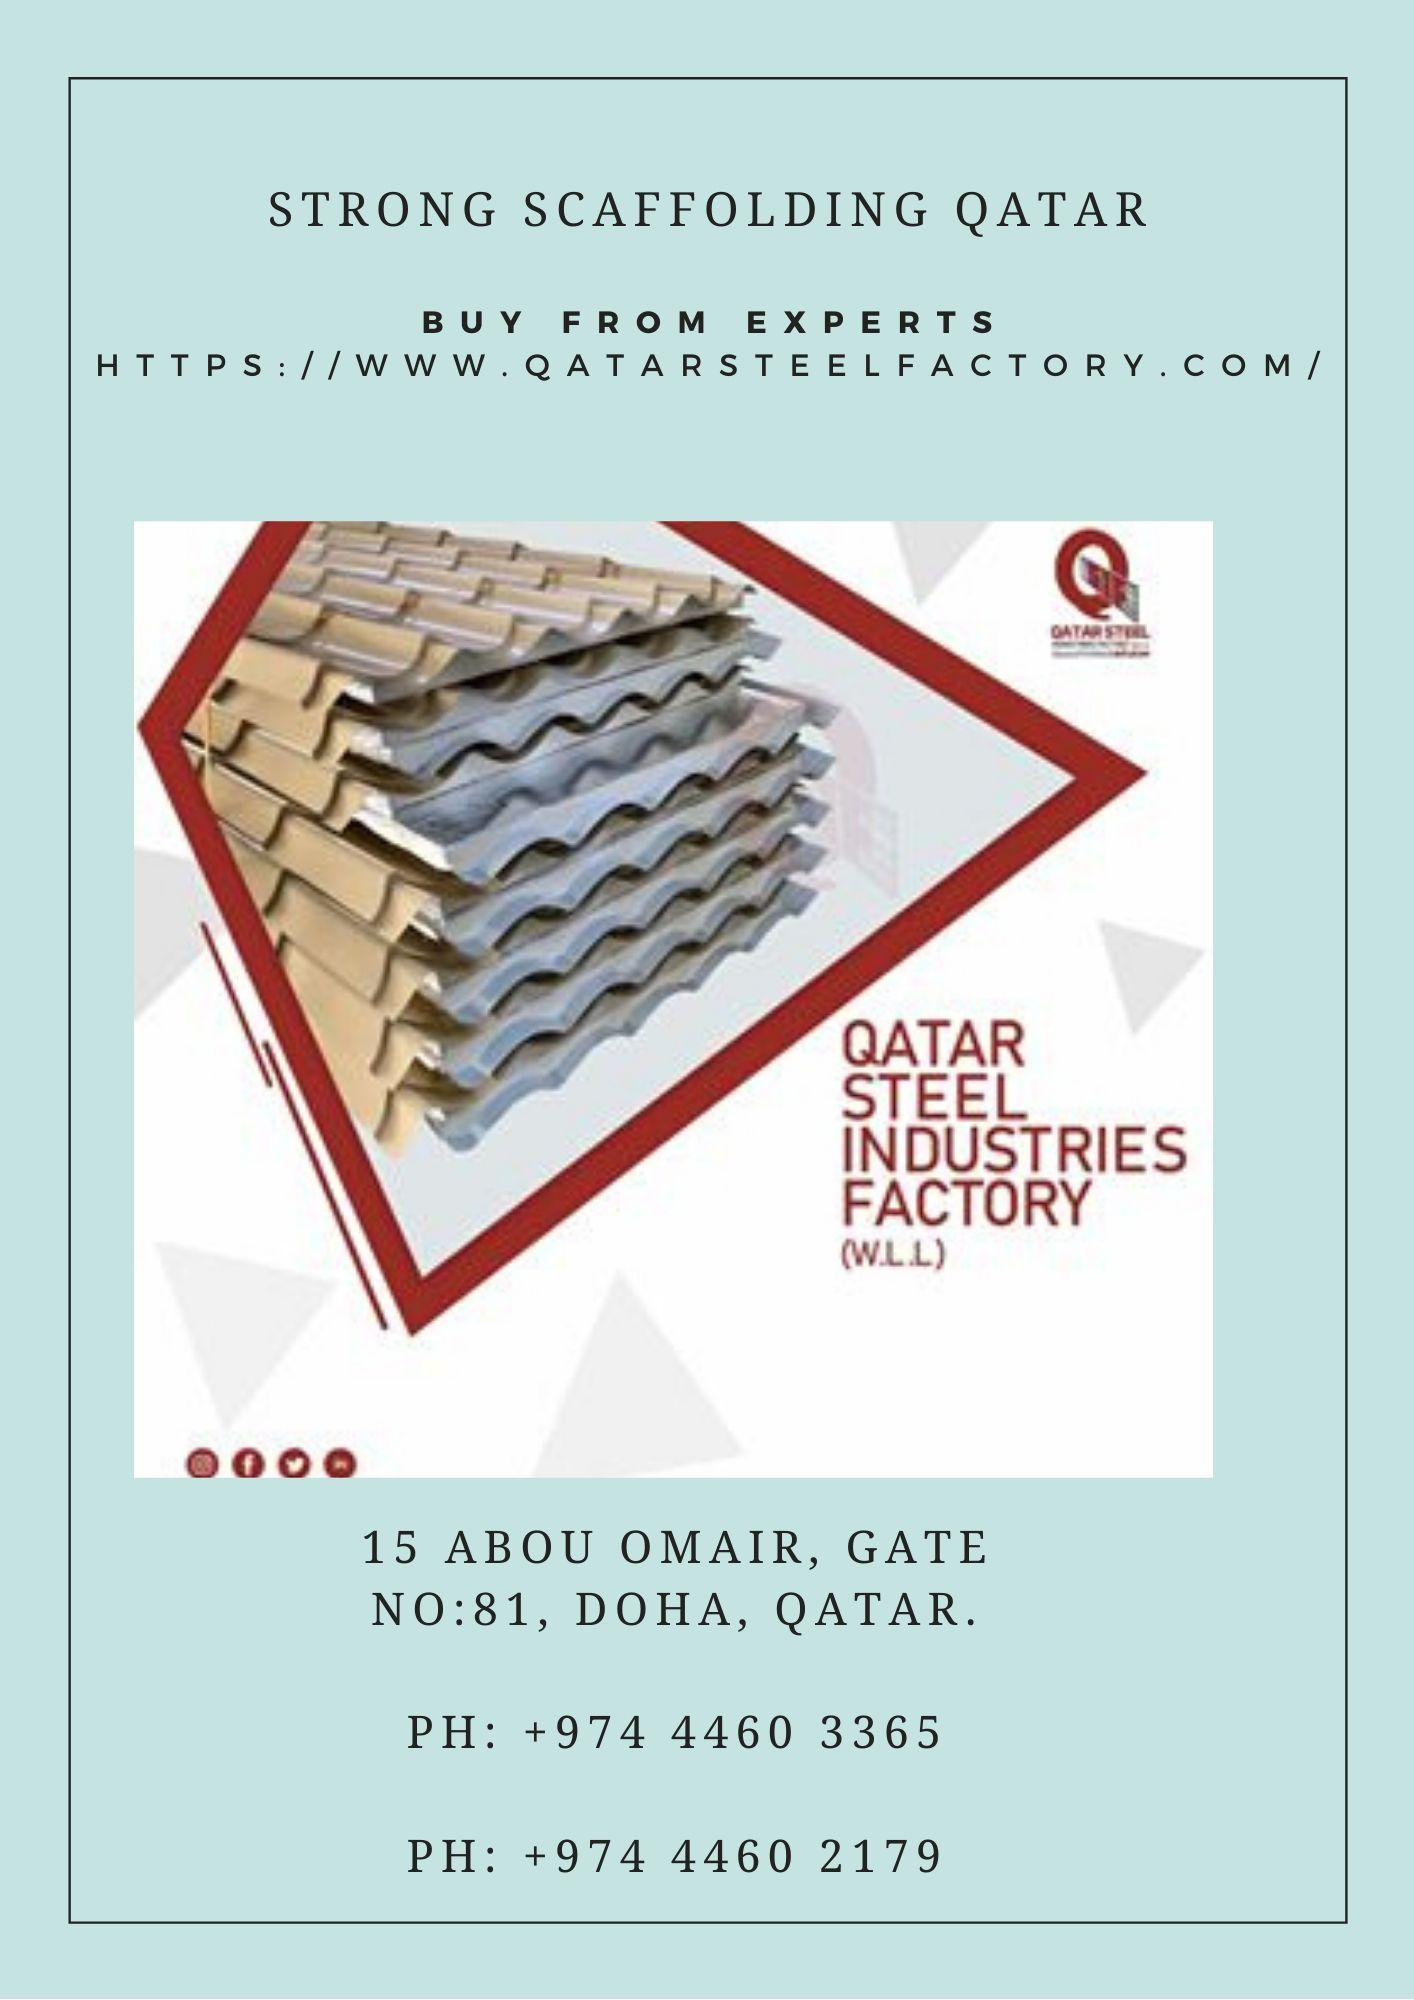 For Stable And Strong Scaffolding Qatar Only One Maker Is Dependable And You Have Guessed The Name Right This Ti In 2020 Scaffolding Corrugated Roofing Steel Companies